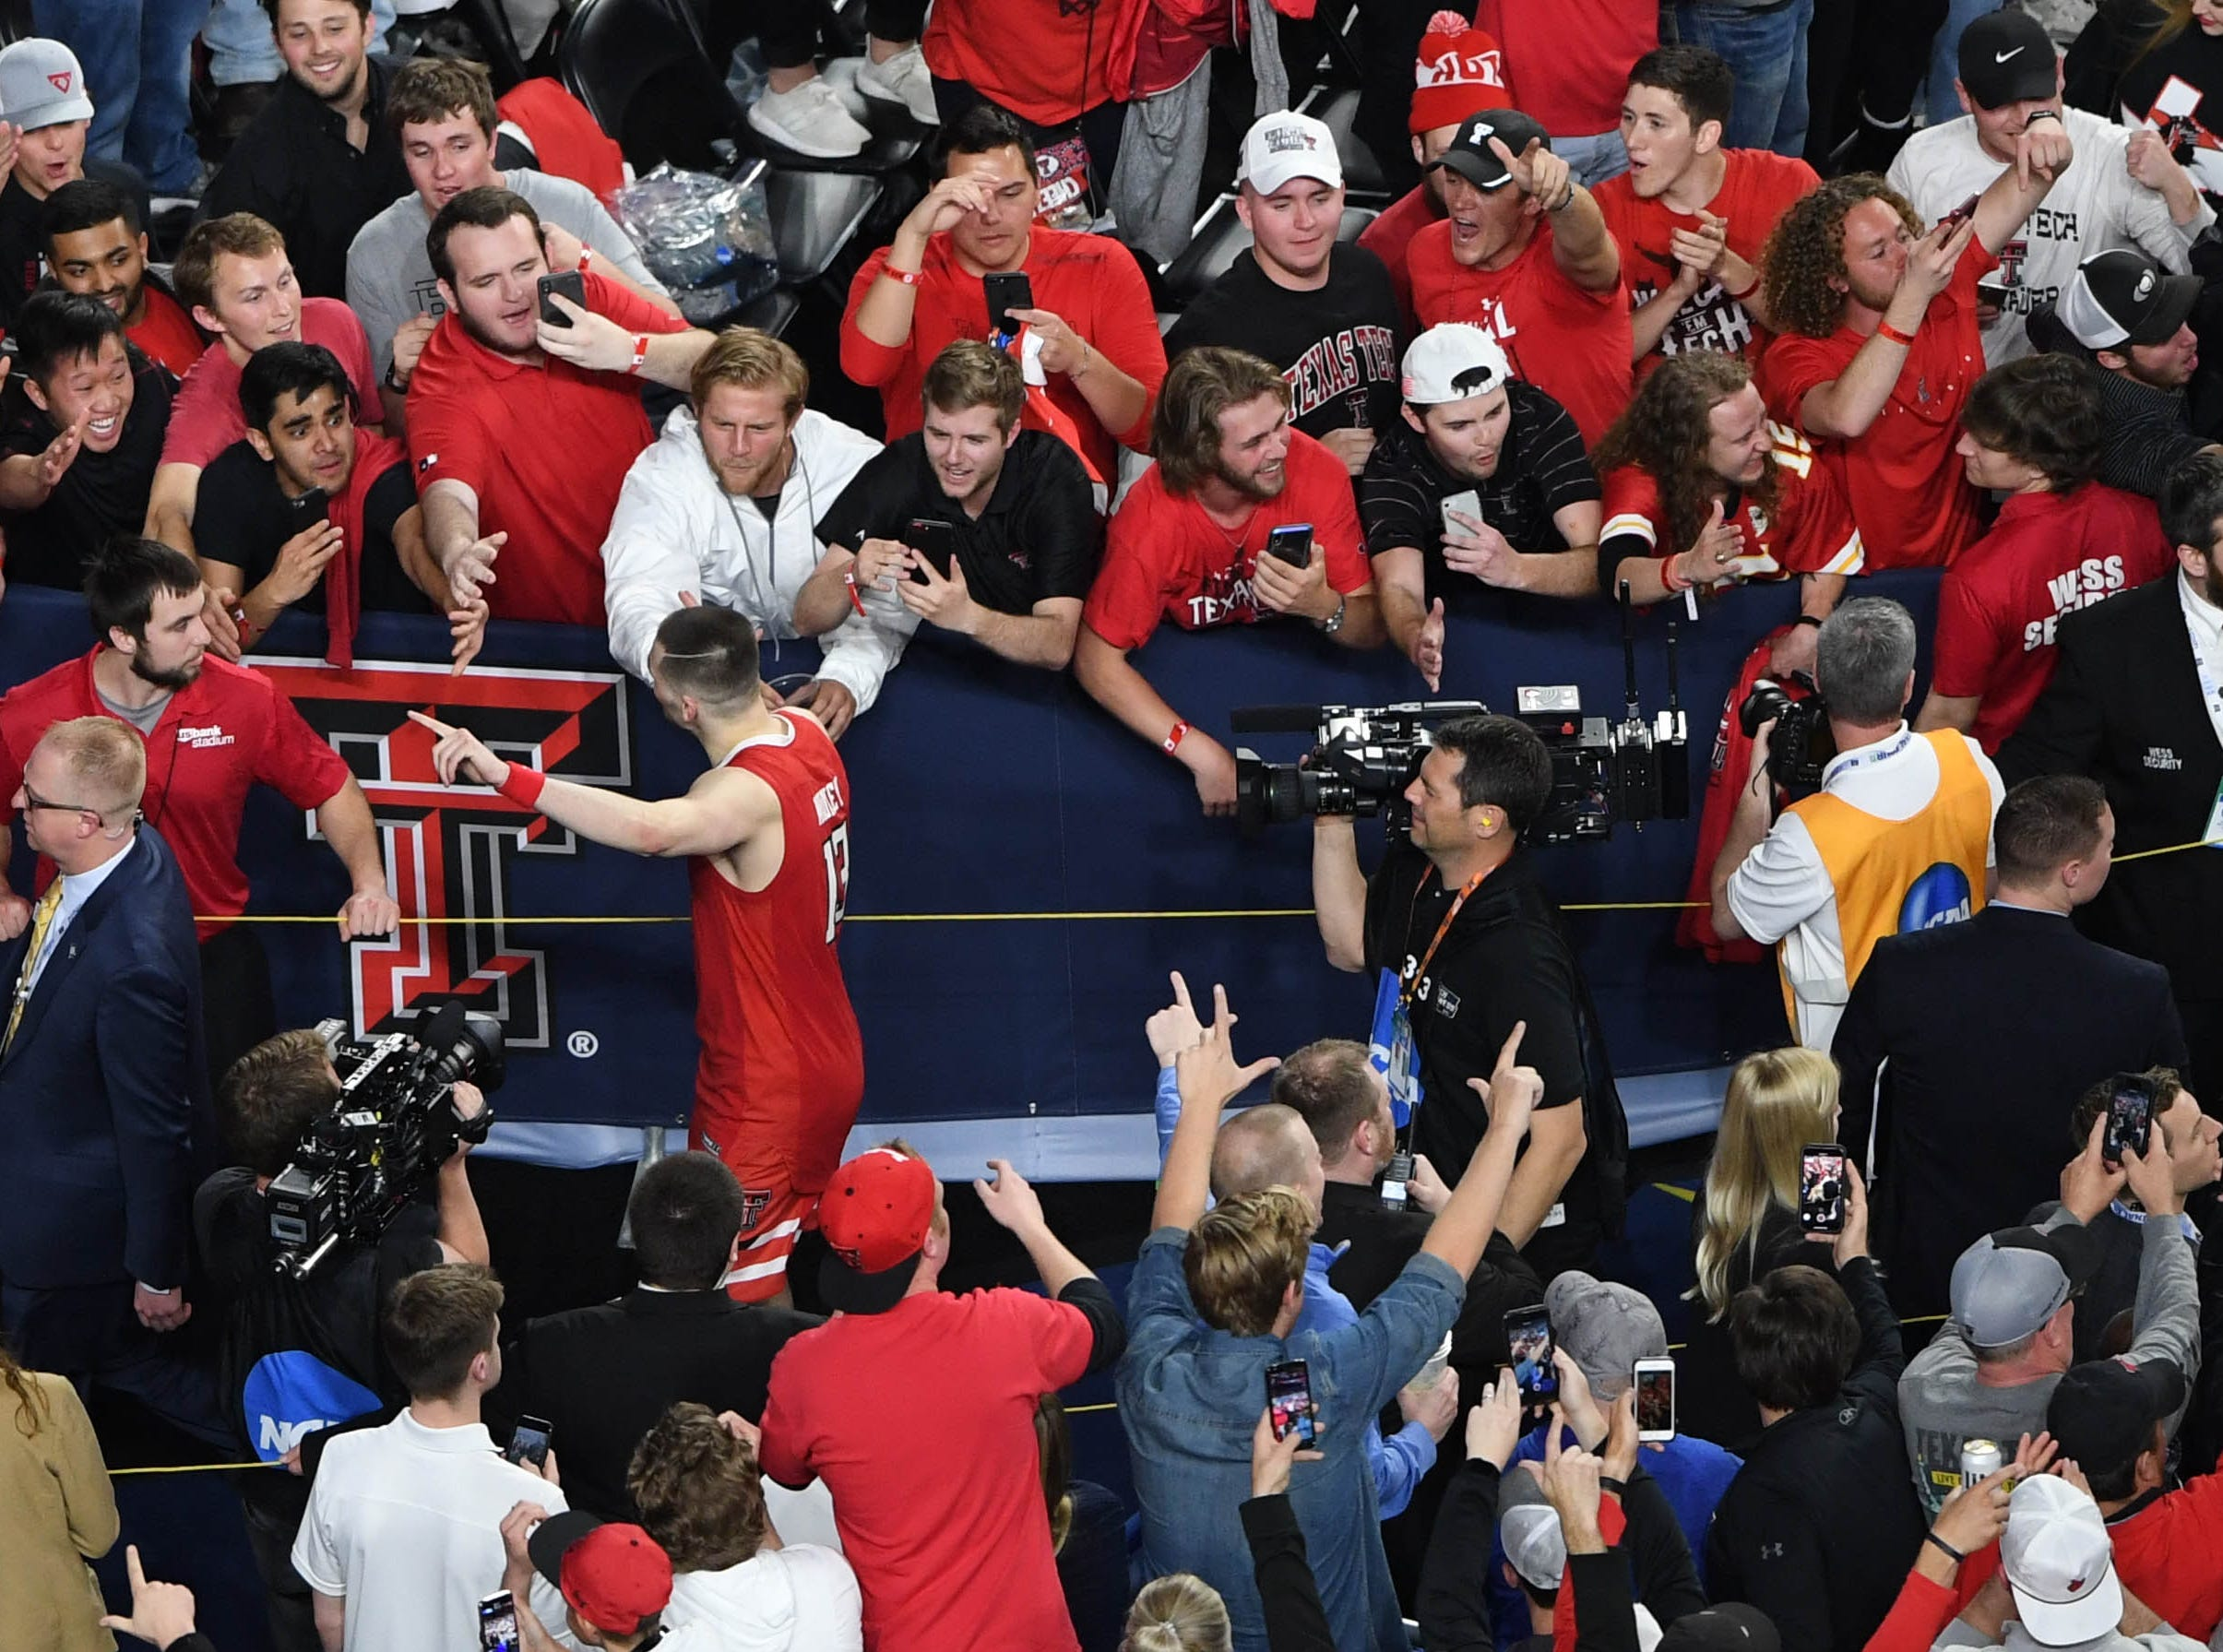 Apr 6, 2019; Minneapolis, MN, USA; Texas Tech Red Raiders guard Matt Mooney (13) greets fans after defeating the Michigan State Spartans in the semifinals of the 2019 men's Final Four at US Bank Stadium. Mandatory Credit: Shanna Lockwood-USA TODAY Sports